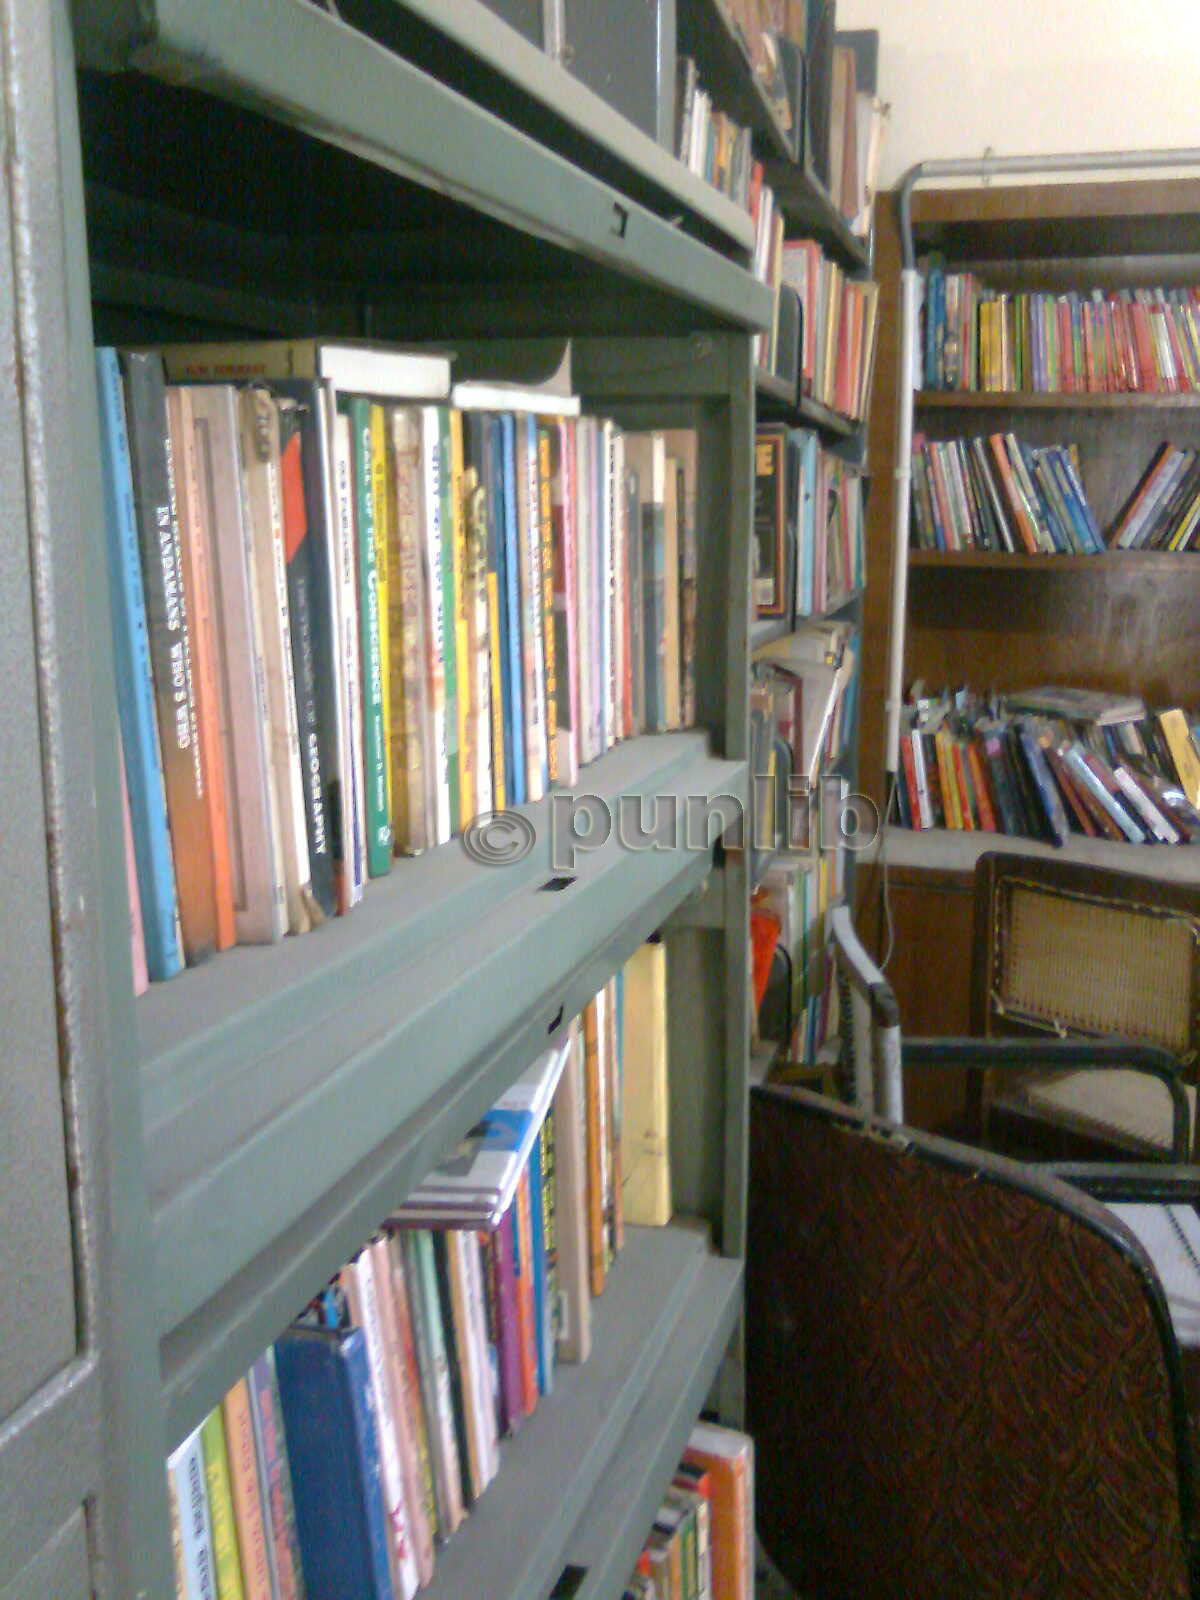 District Library Faridabad